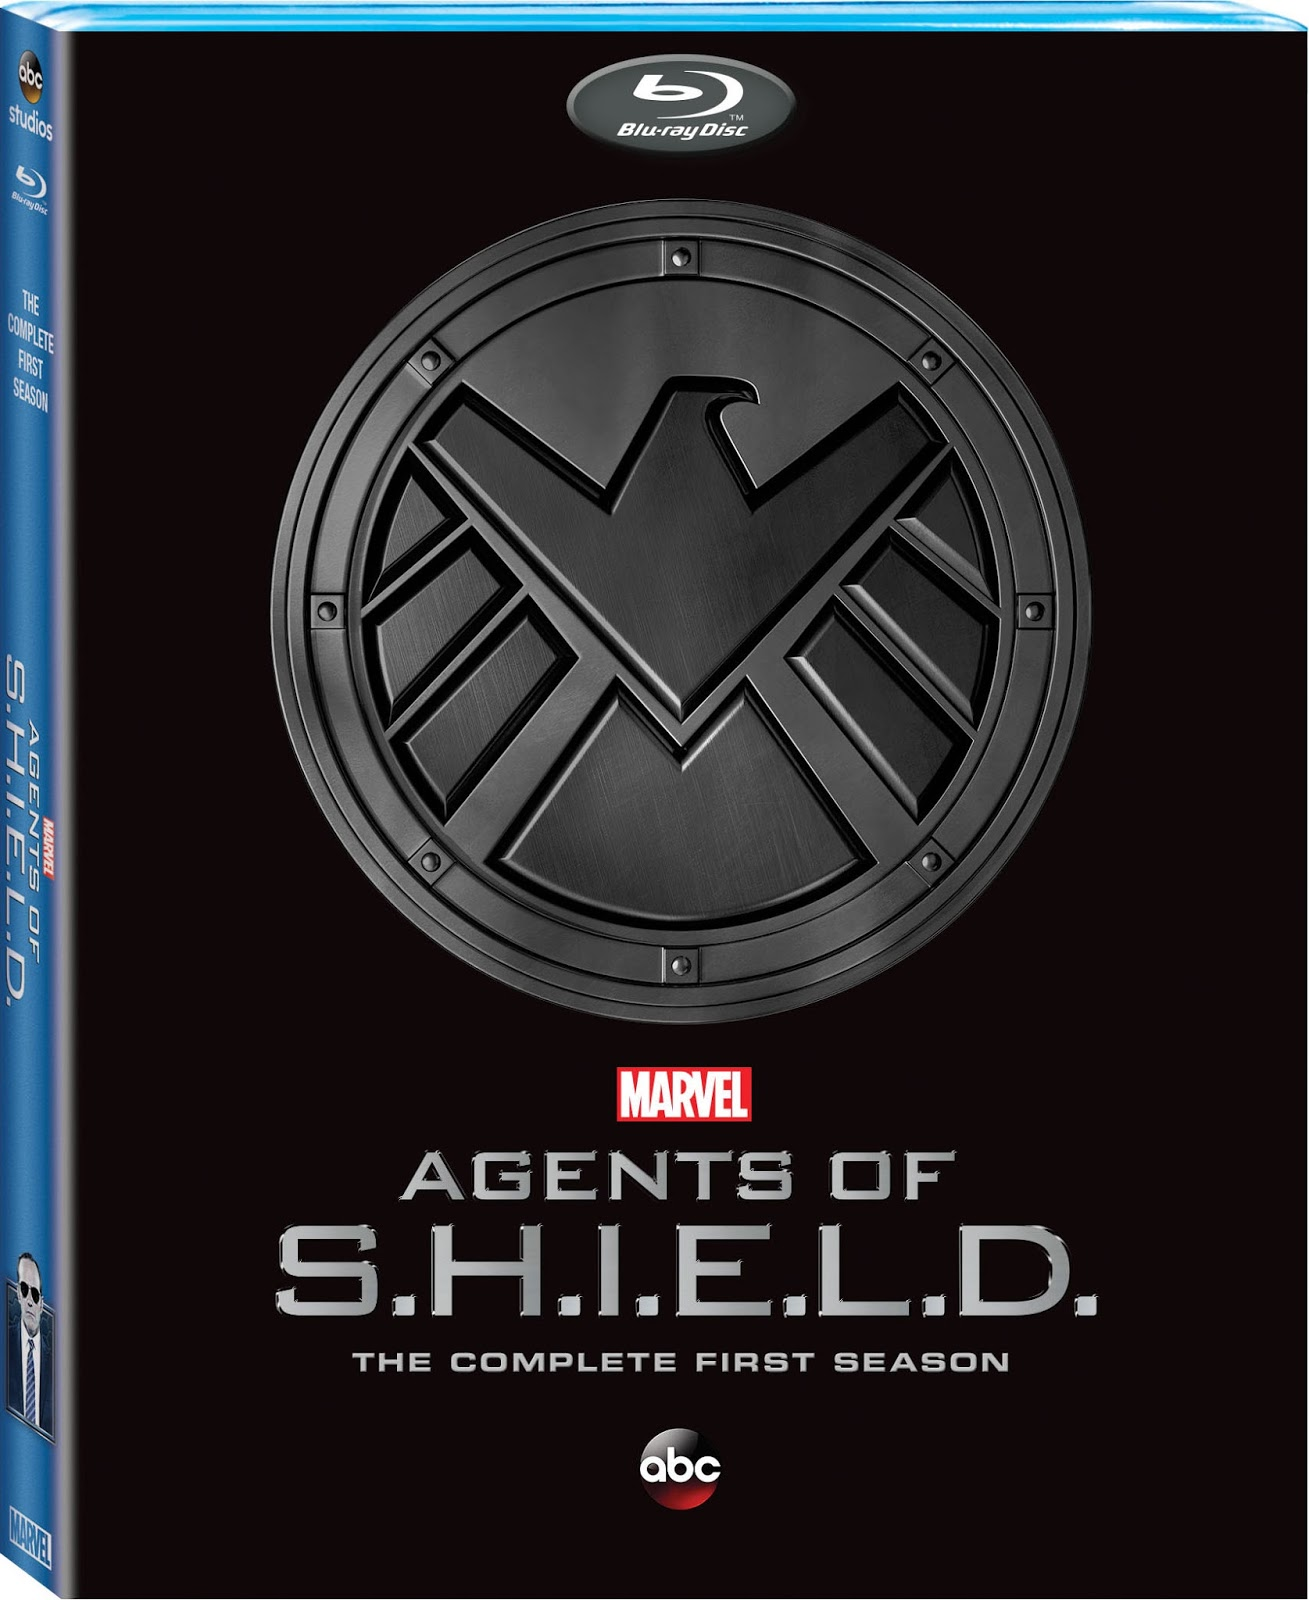 Agents of S.H.I.E.L.D. - The Complete First Season coming to DVD and Blu-ray on September 9th